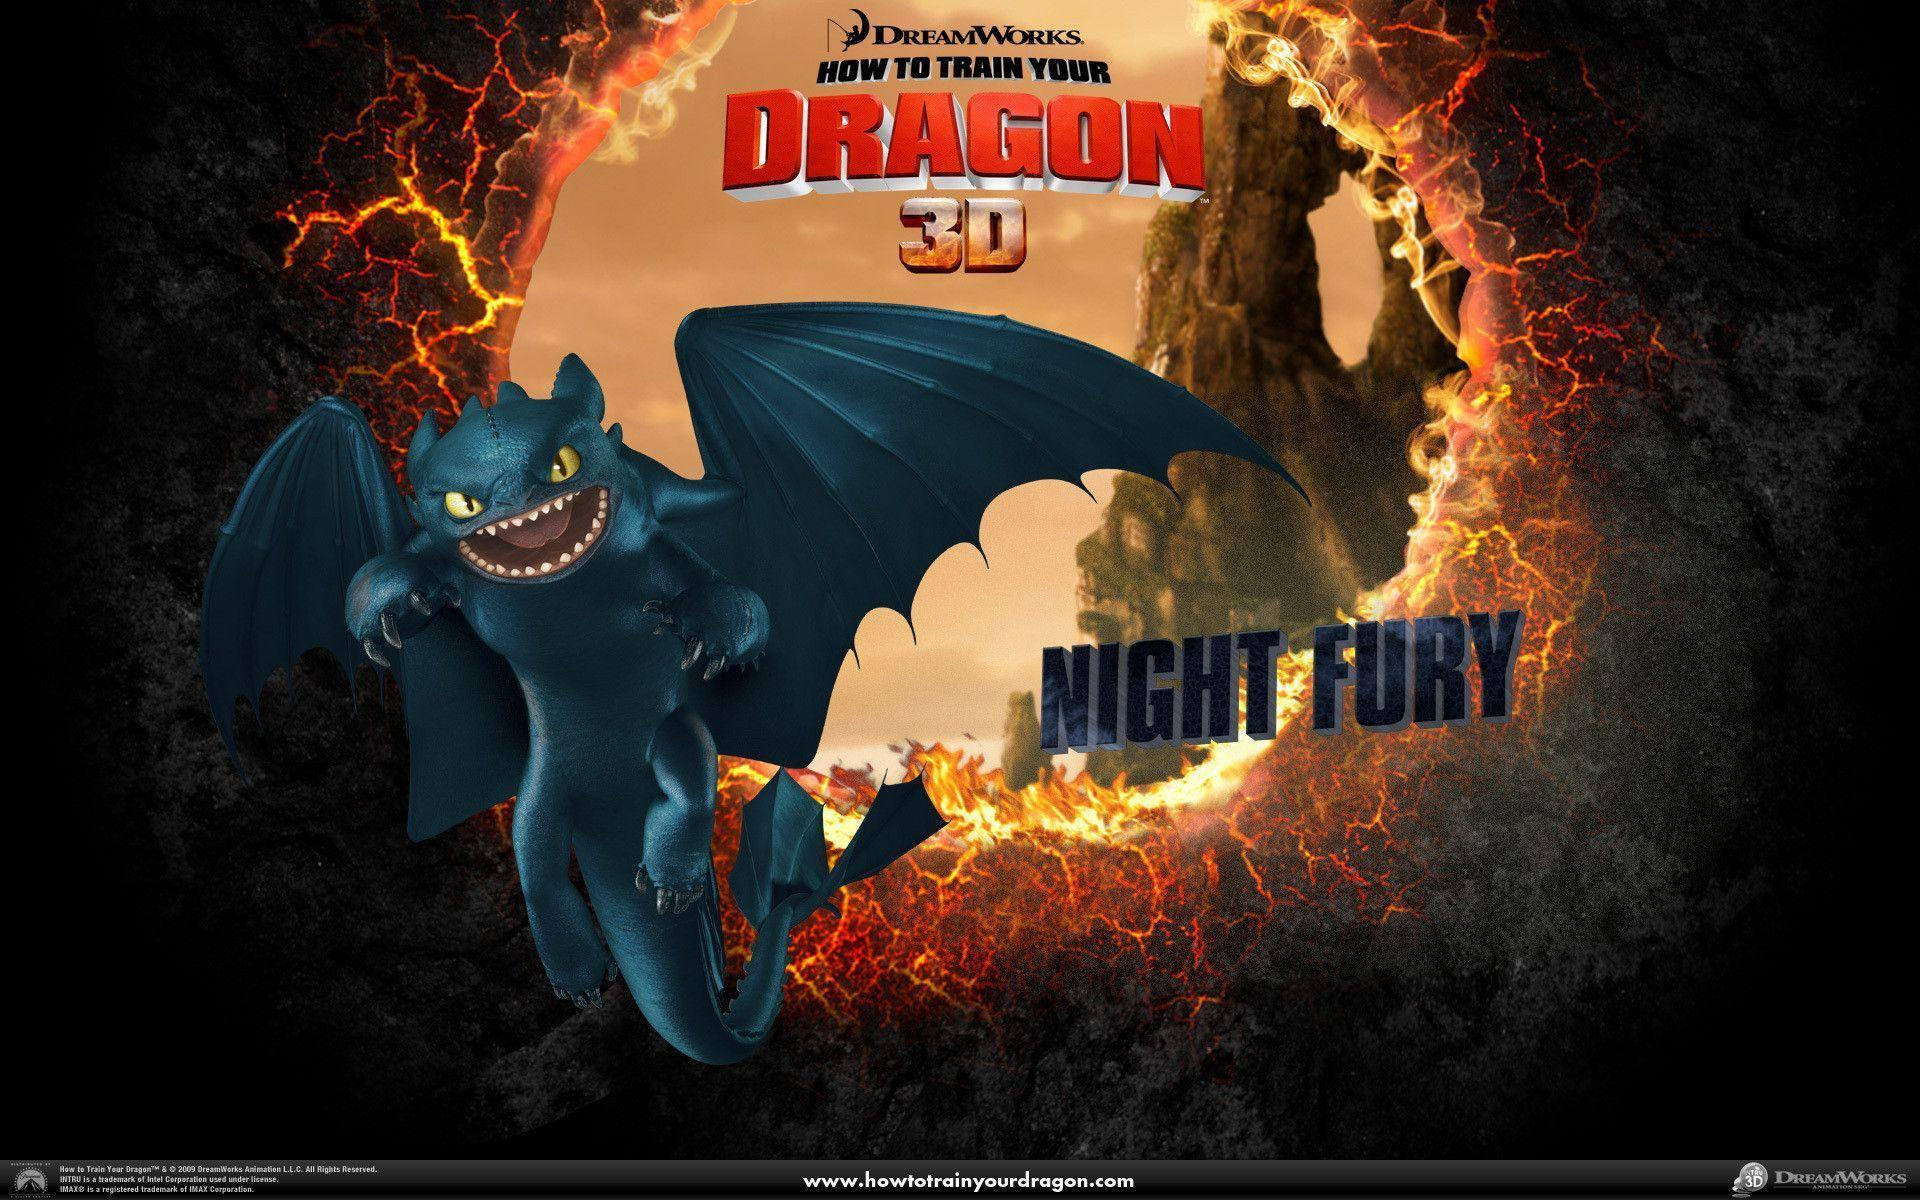 Night Fury Wallpaper - Toothless the Dragon Wallpaper (11838873 ...